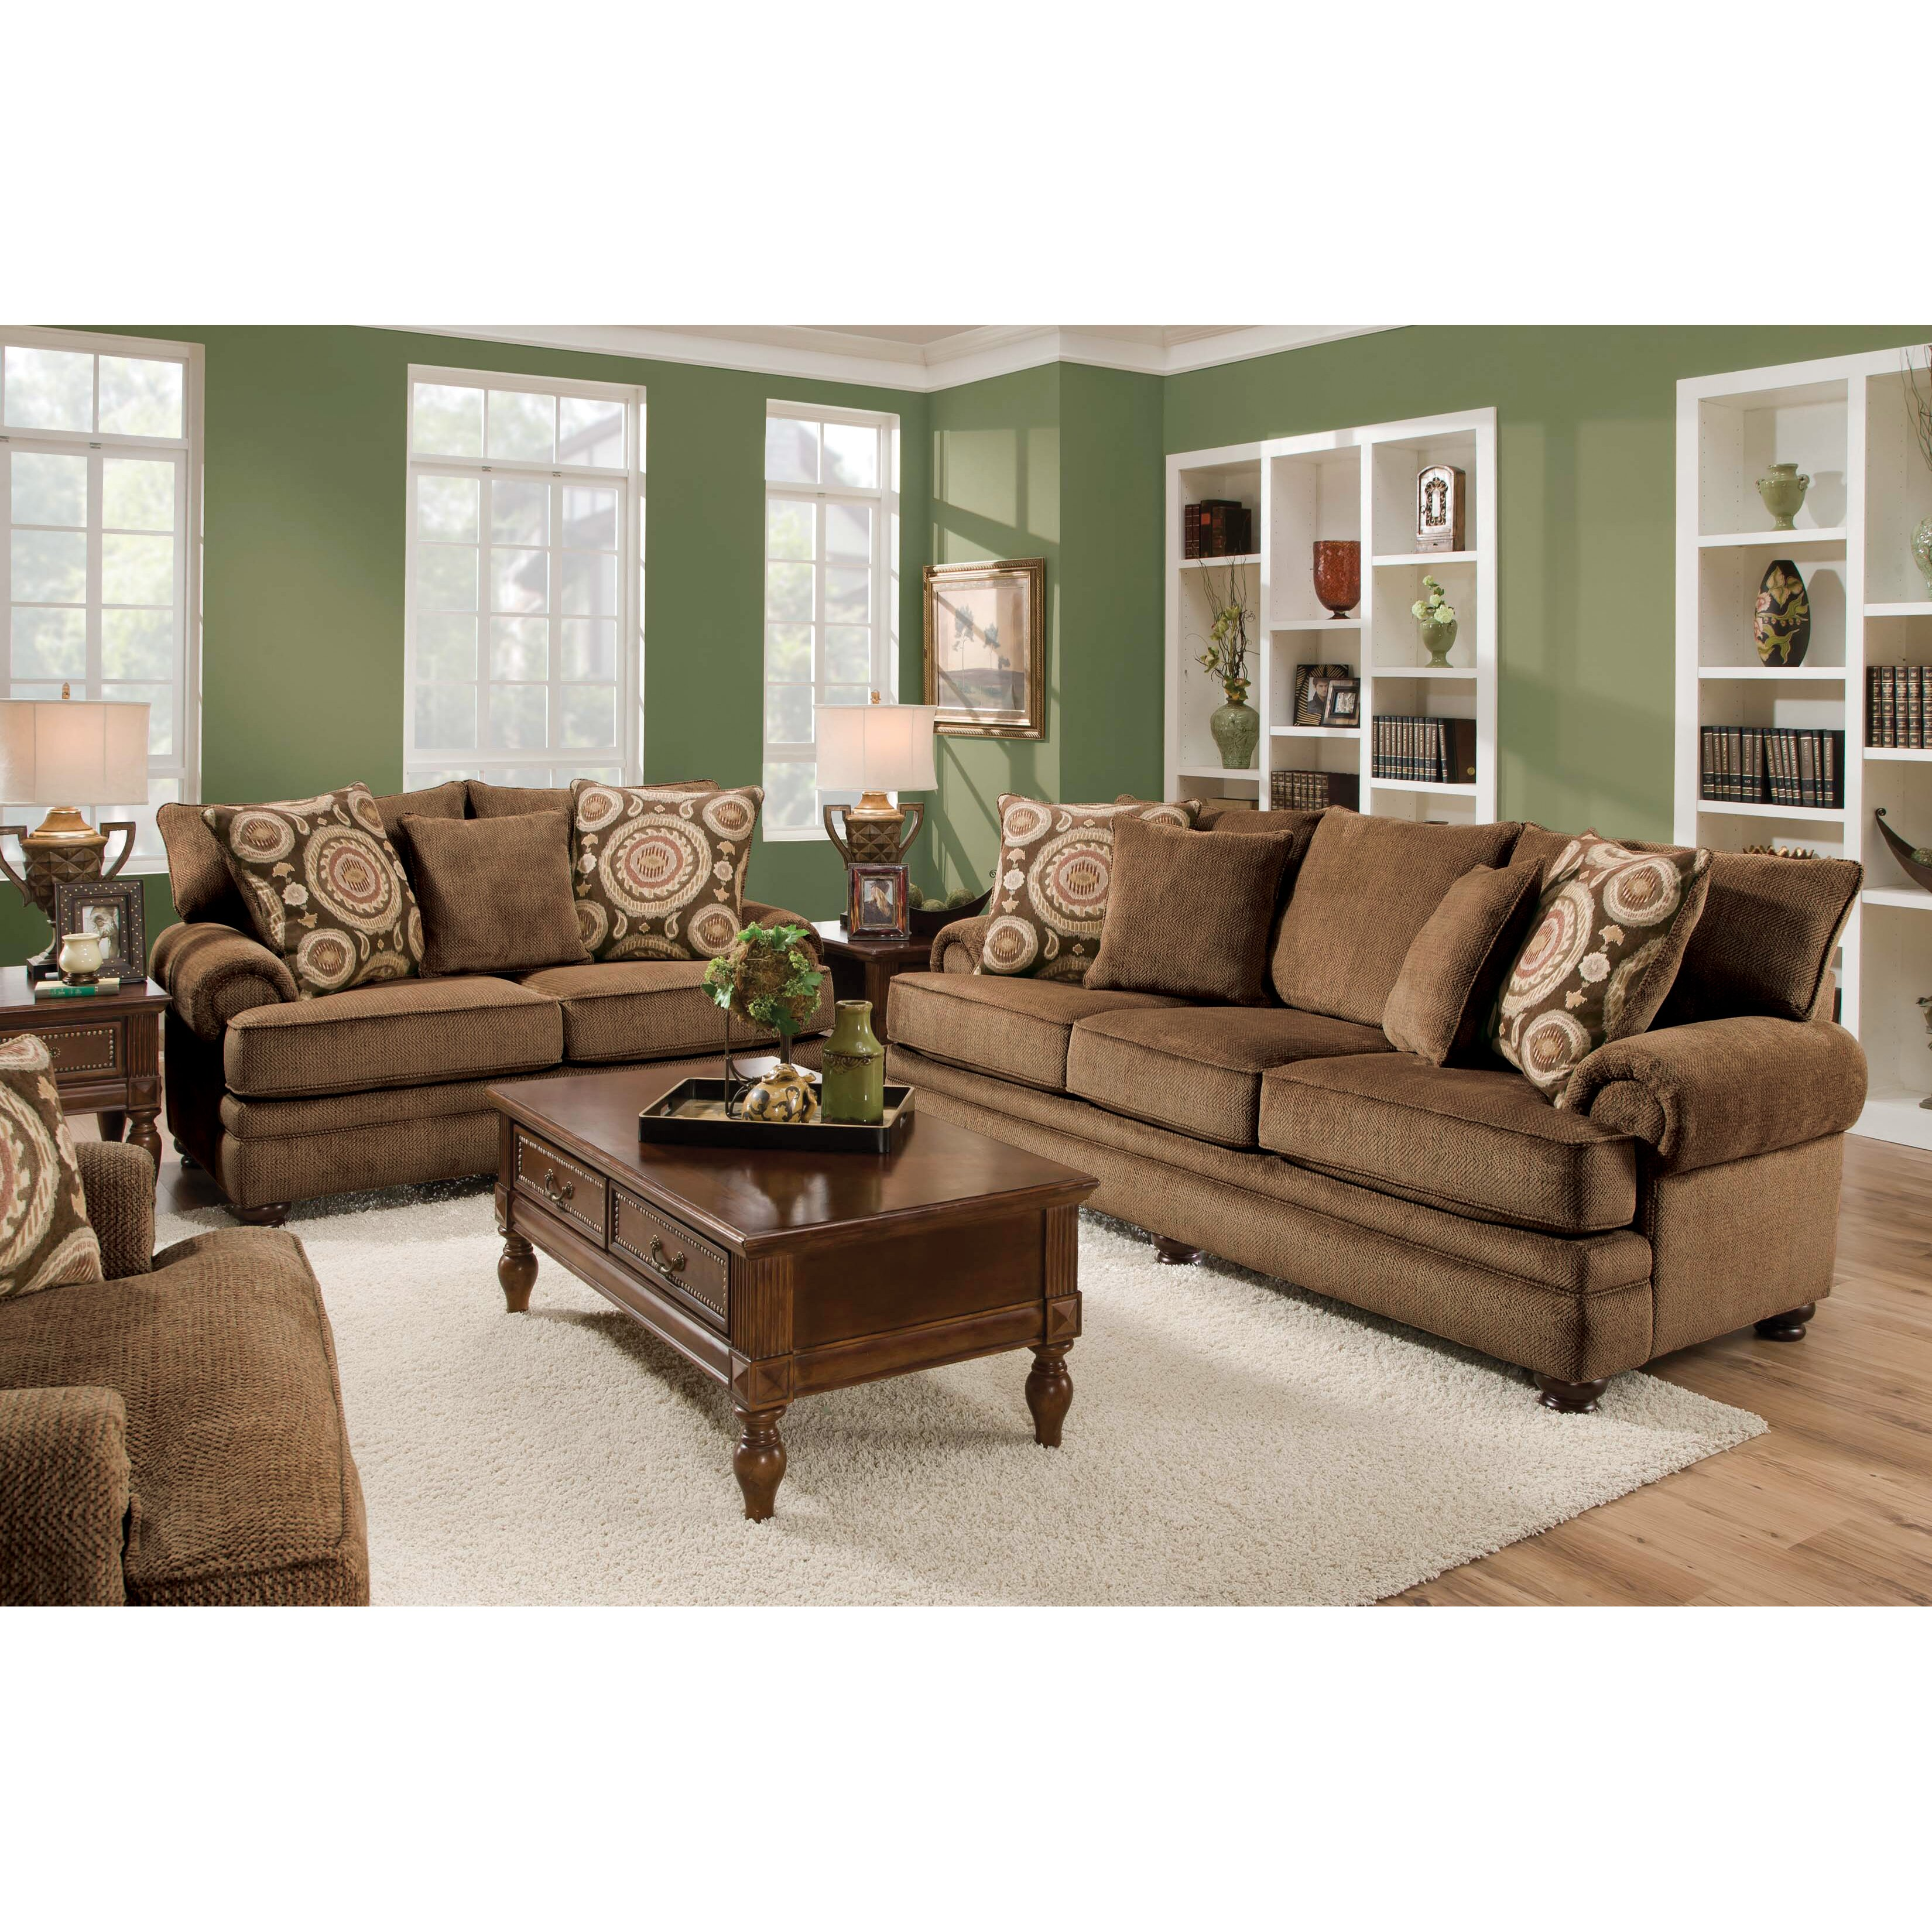 Alcott Hill Living Room Collection Reviews Wayfair